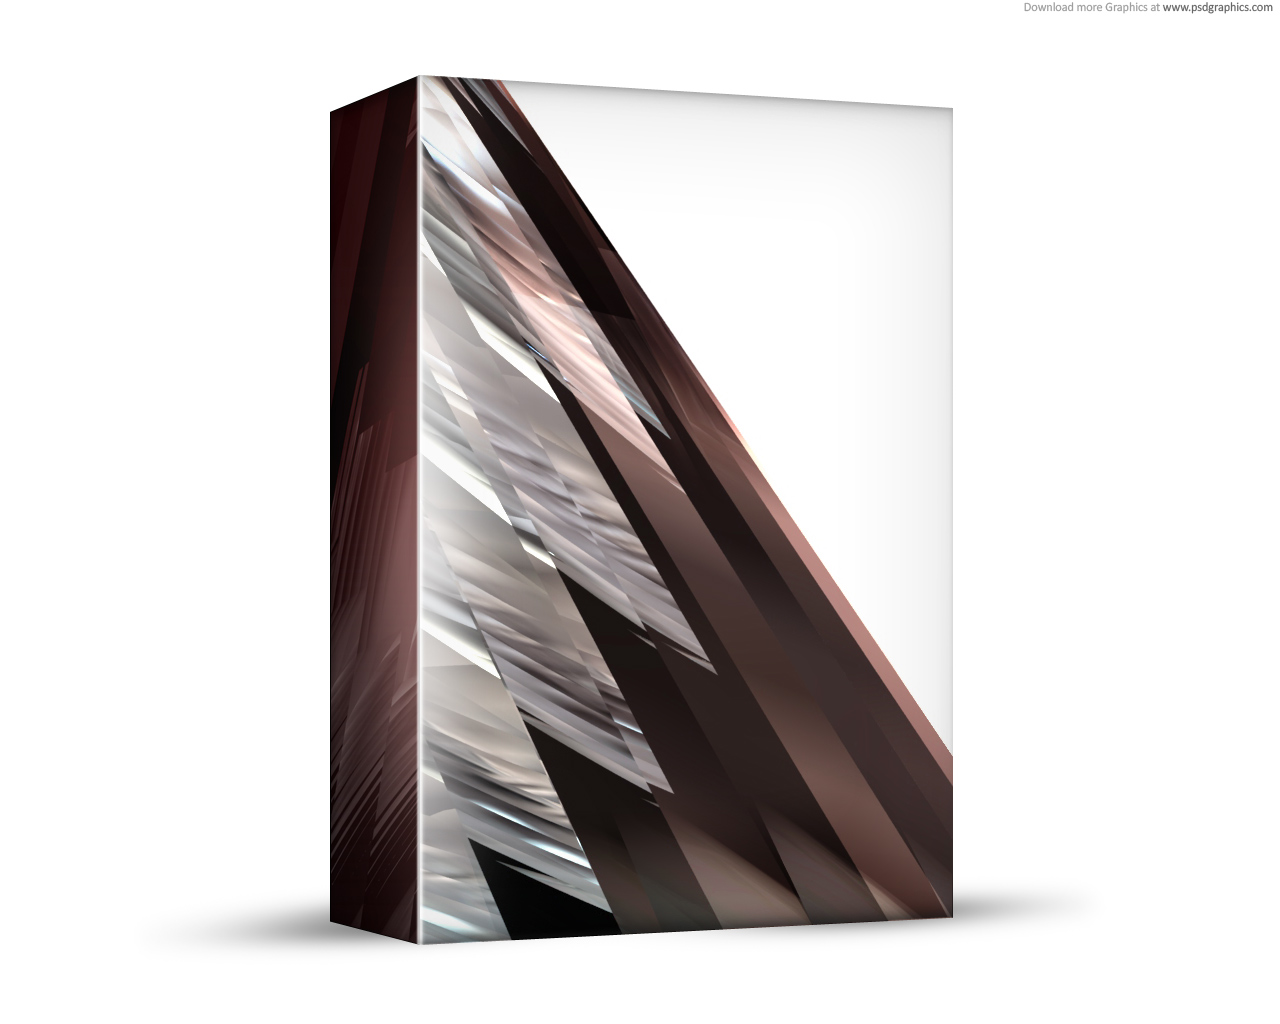 Abstract brown 3d box template psd psdgraphics blank brown box maxwellsz